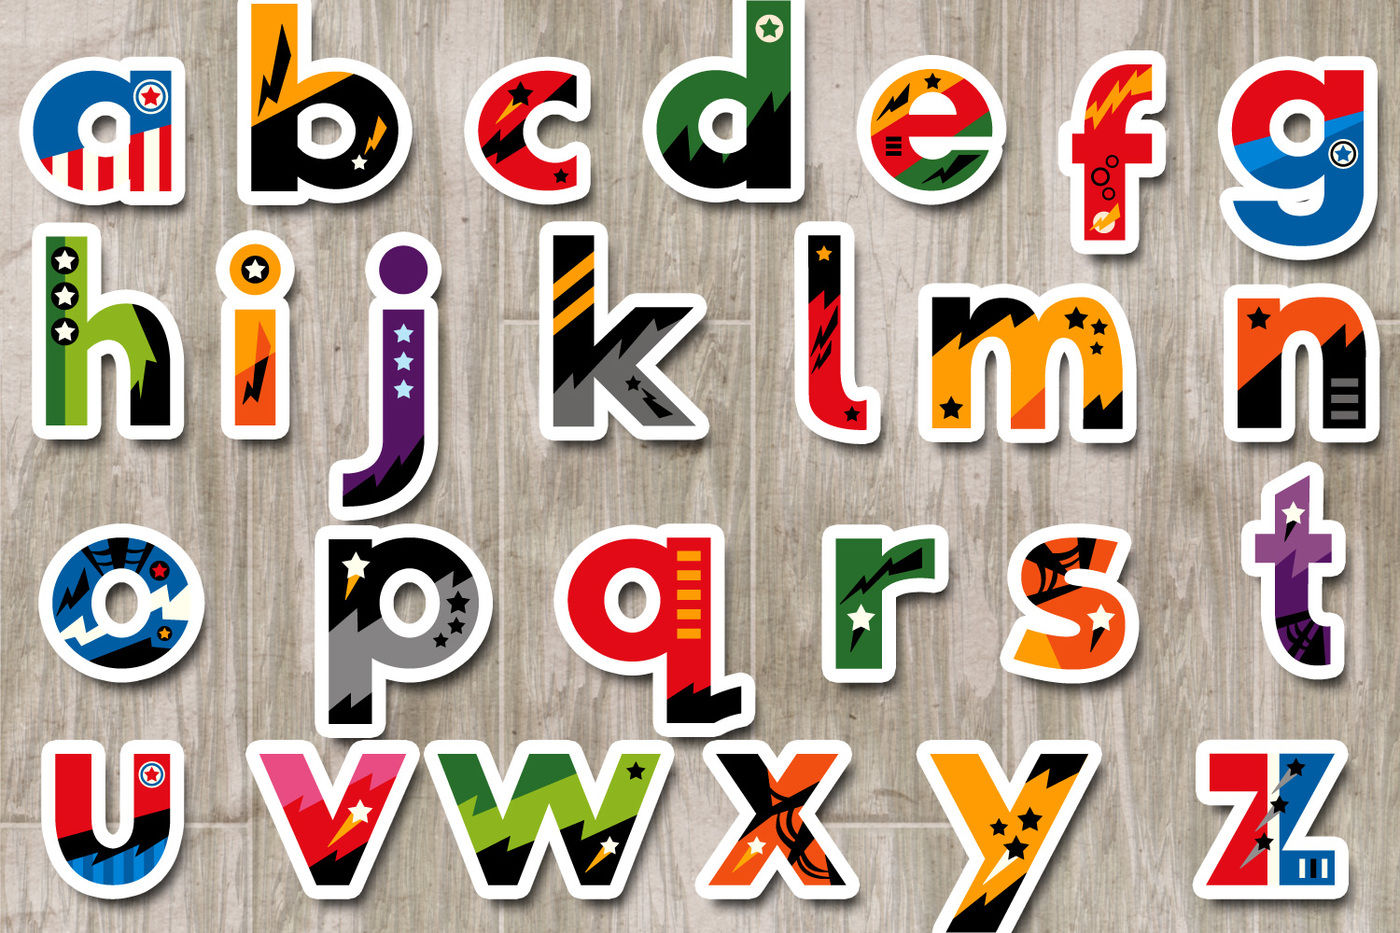 Lowercase letters clipart svg black and white library Superhero Alphabet Clipart Graphics, small caps / lowercase ... svg black and white library